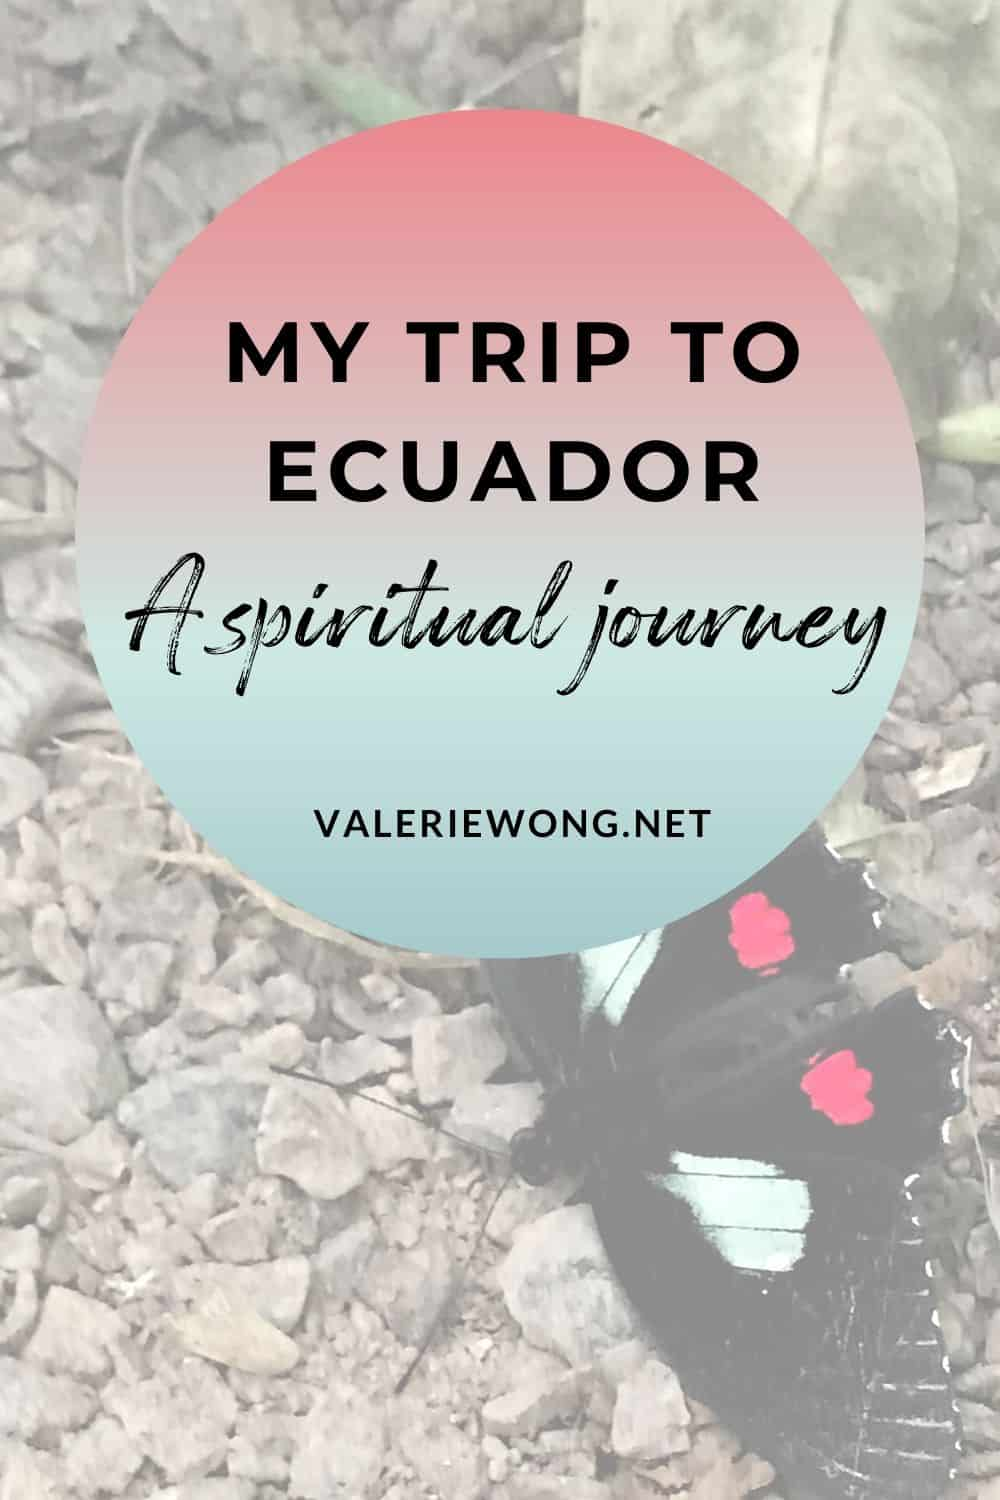 Ecuador Travel Guide | If you're considering a visit to Ecuador, I highly recommend it! We traveled from Quito in the north to Cuenca in the south in 10 days, so we saw a lot! In this guide, I'm sharing our day-by-day travel itinerary with recommendations for where to eat, what to do, places to visit, where to stay, helpful travel tips for traveling in Ecuador, and some really unique dining, cultural, spiritual and nature experiences in Ecuador you don't want to miss! | ValerieWong.net via @valeriewonglifecoach